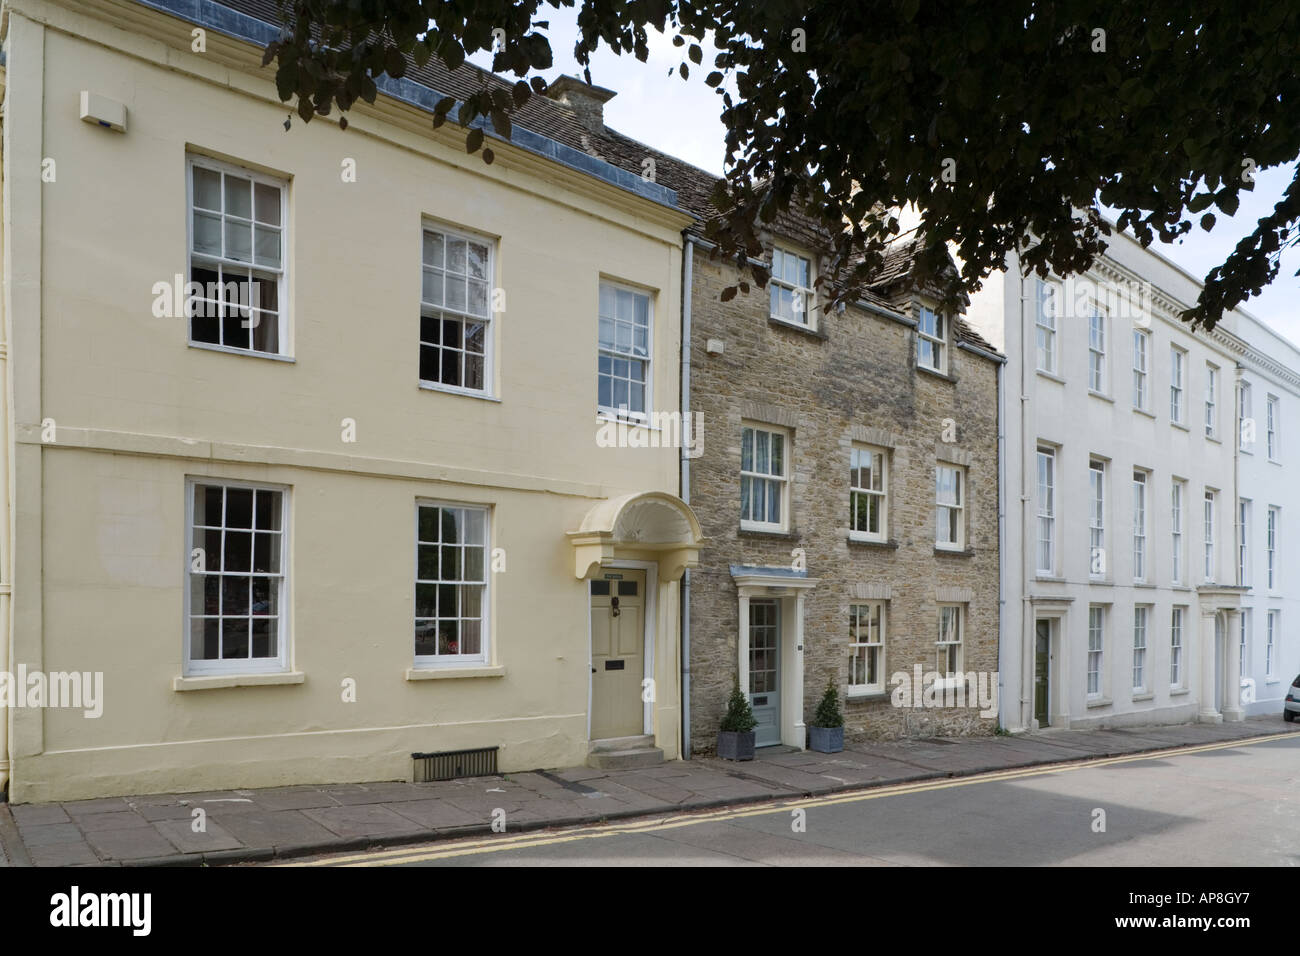 Eighteenth century houses in Chipping Street in the Cotswold town of Tetbury, Gloucestershire - Stock Image